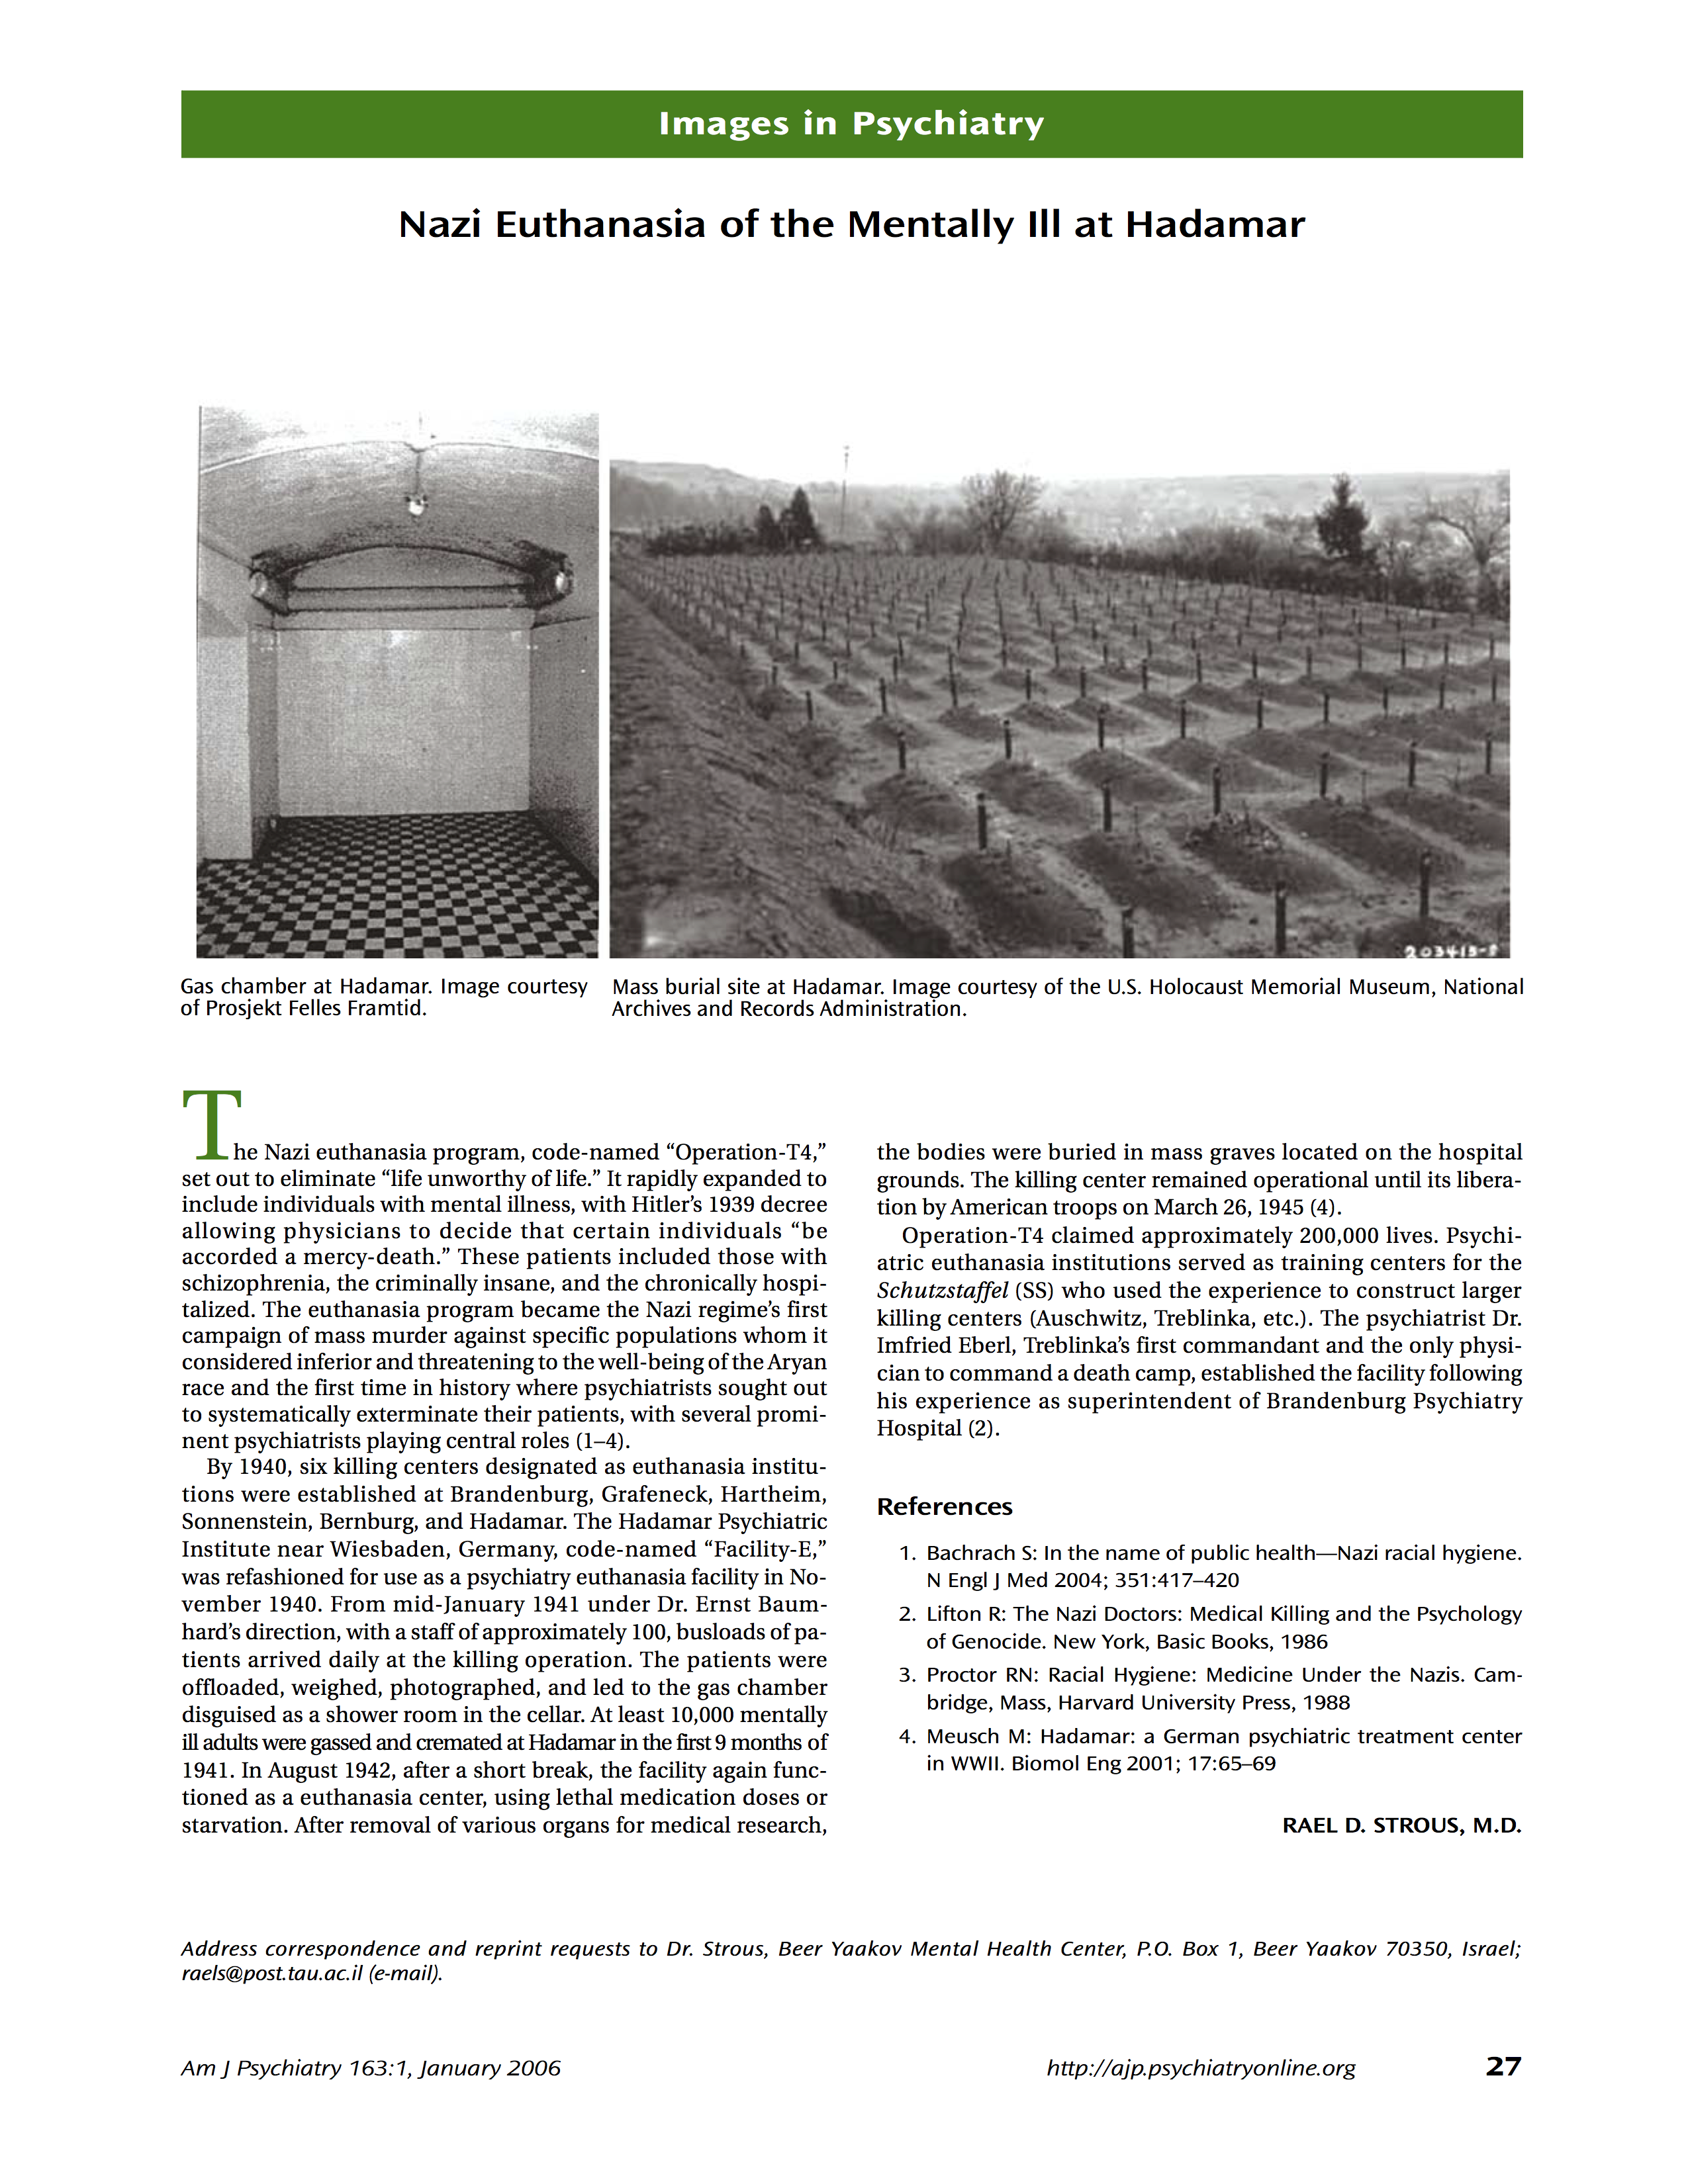 survivors victims and perpetrators essays on the nazi holocaust